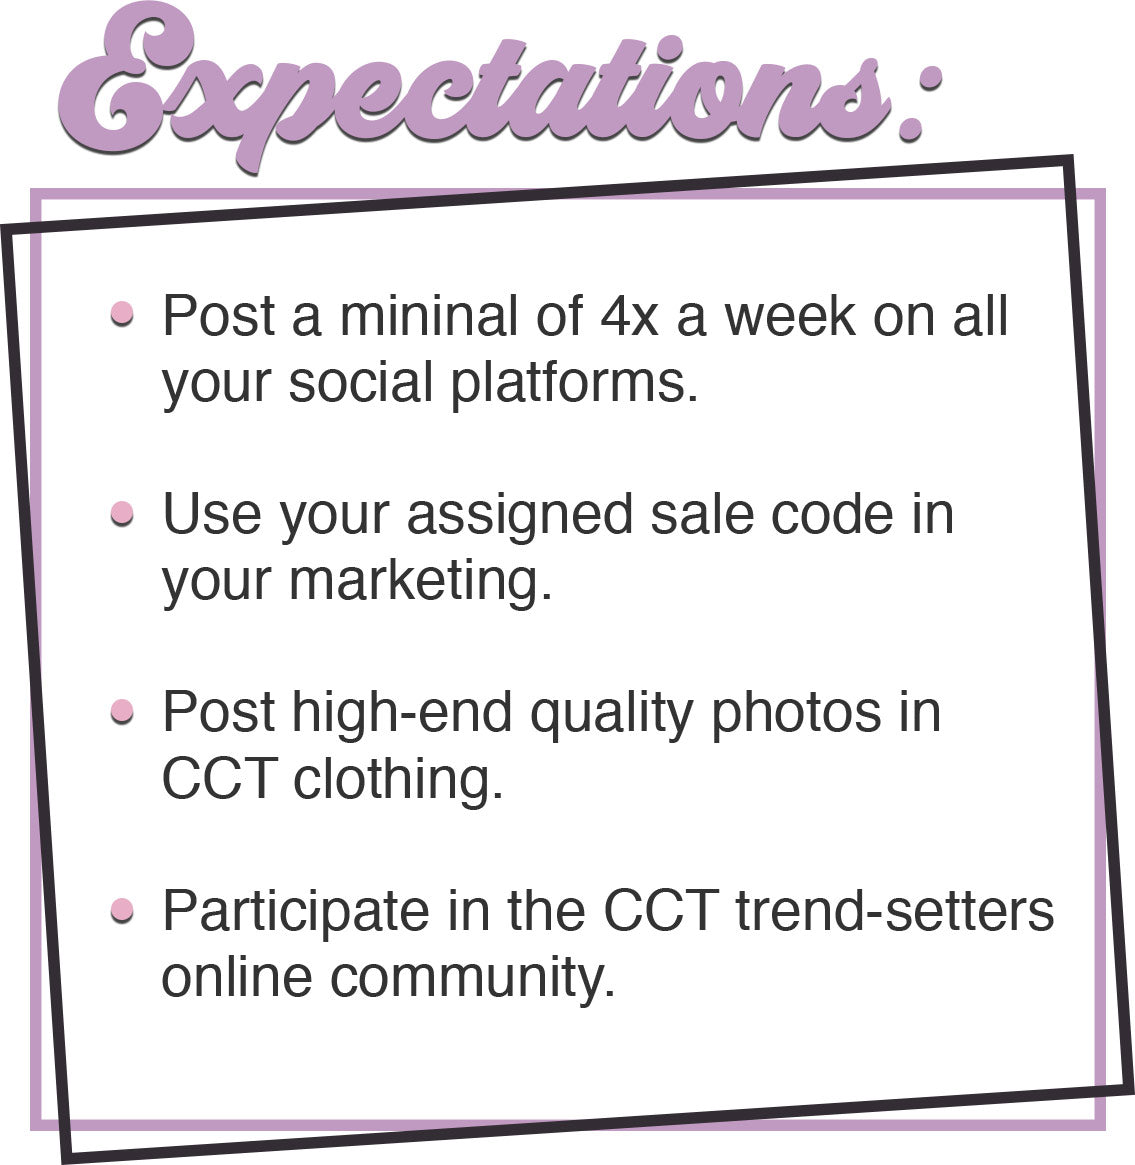 trend-setters expectations